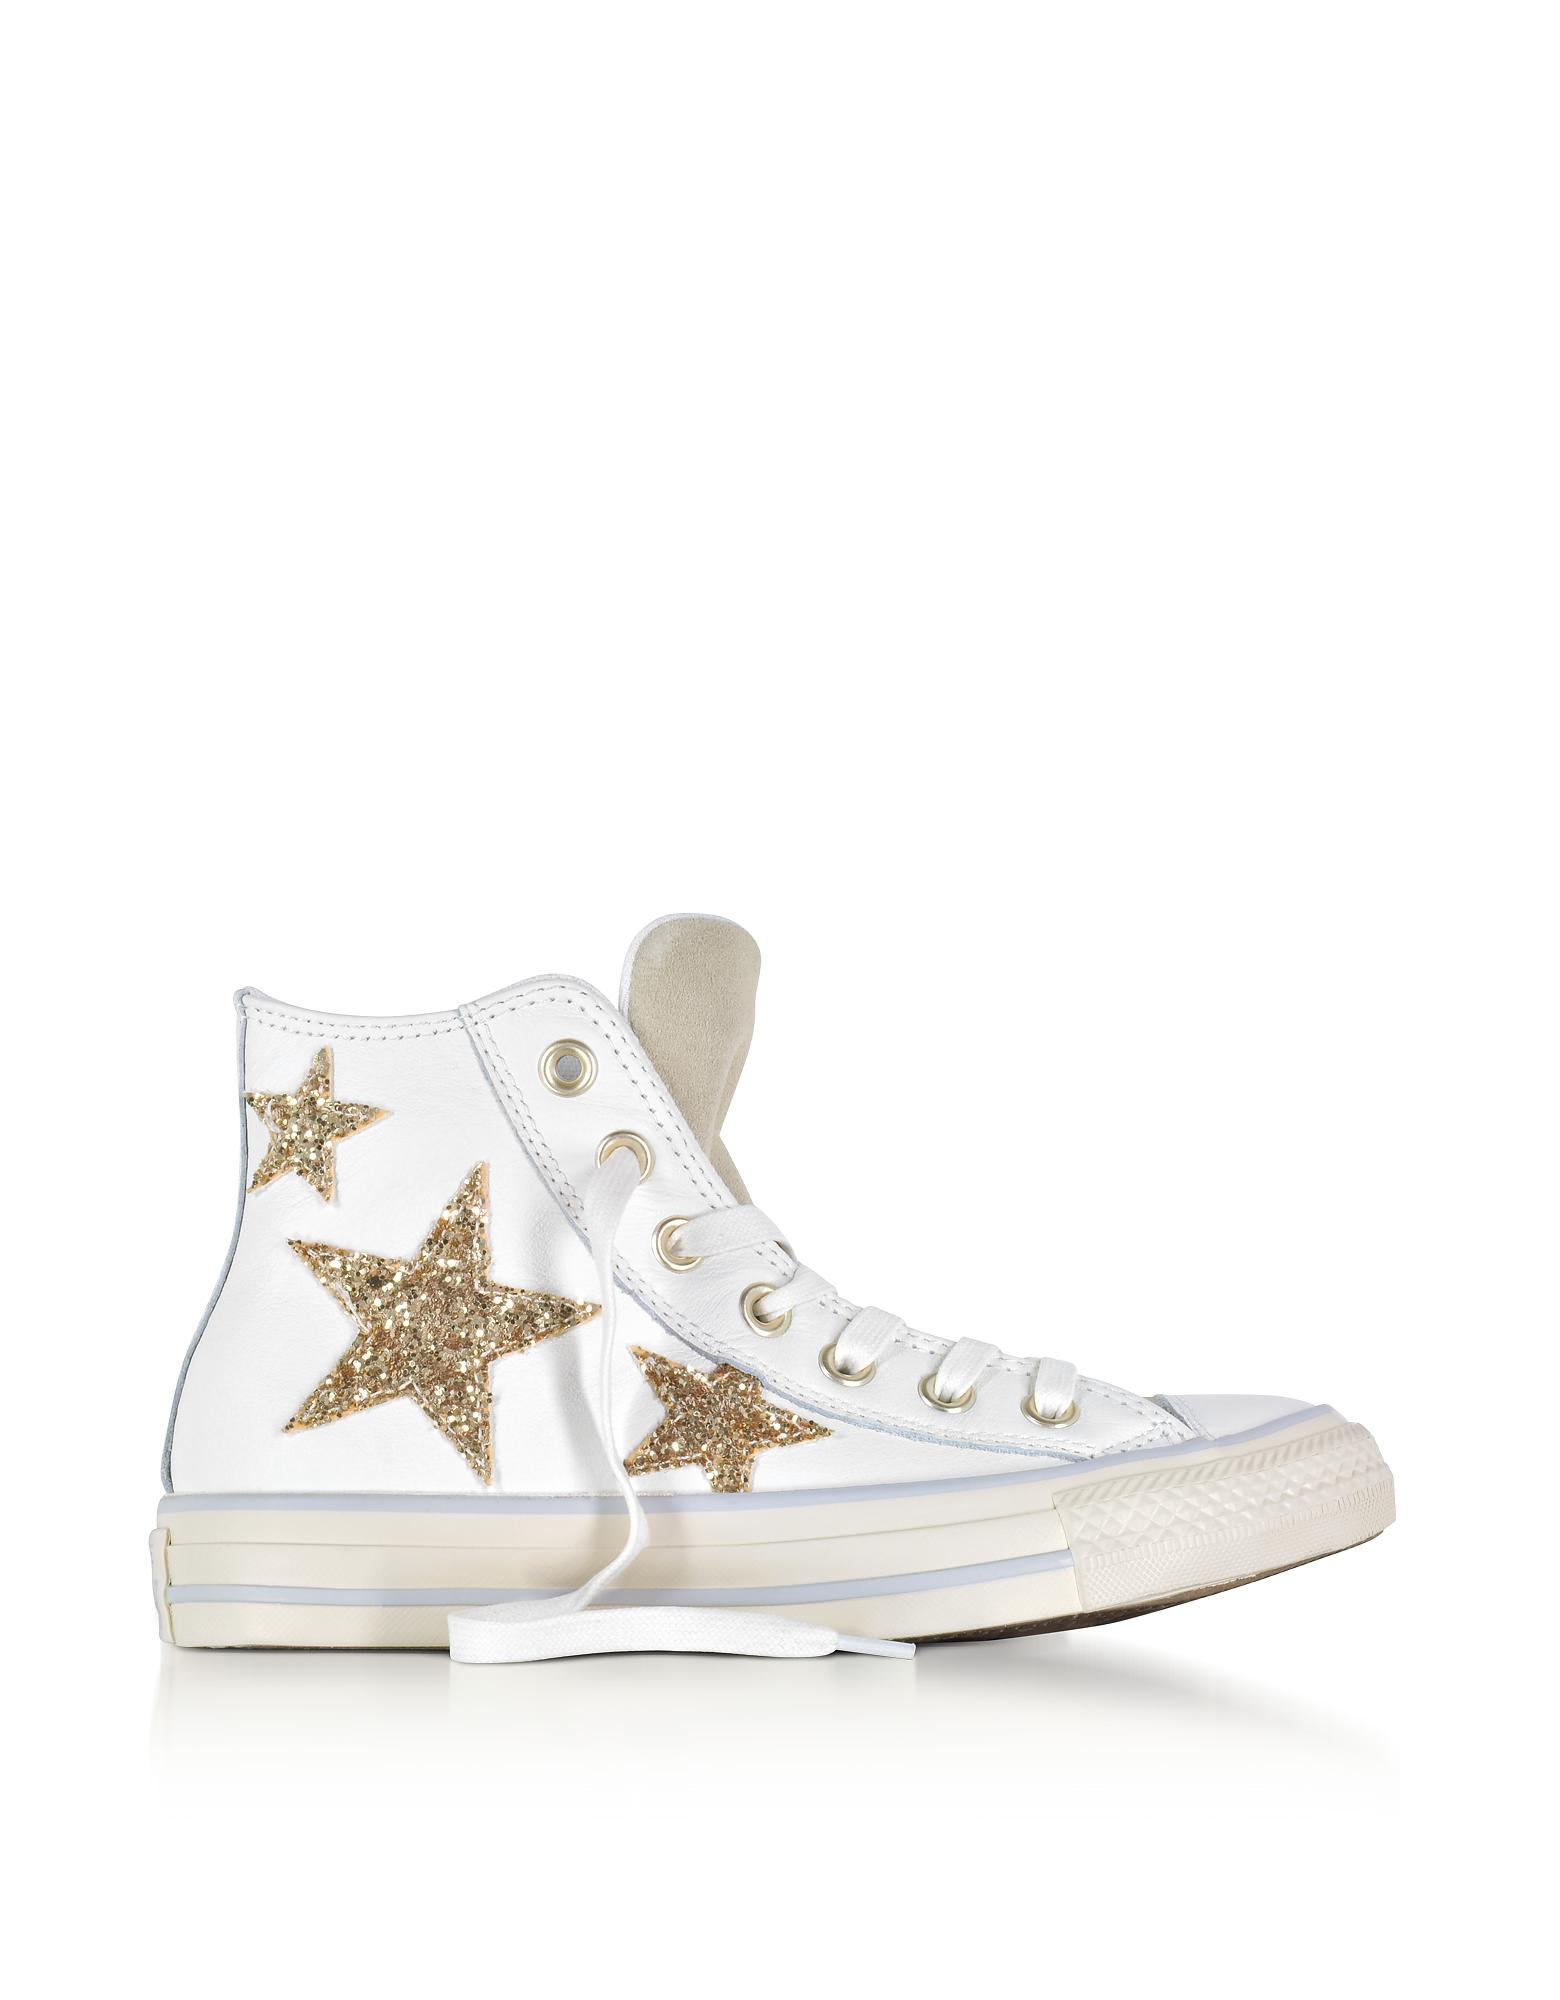 Converse Chuck Taylor All Star High Curved Eyestay Leather